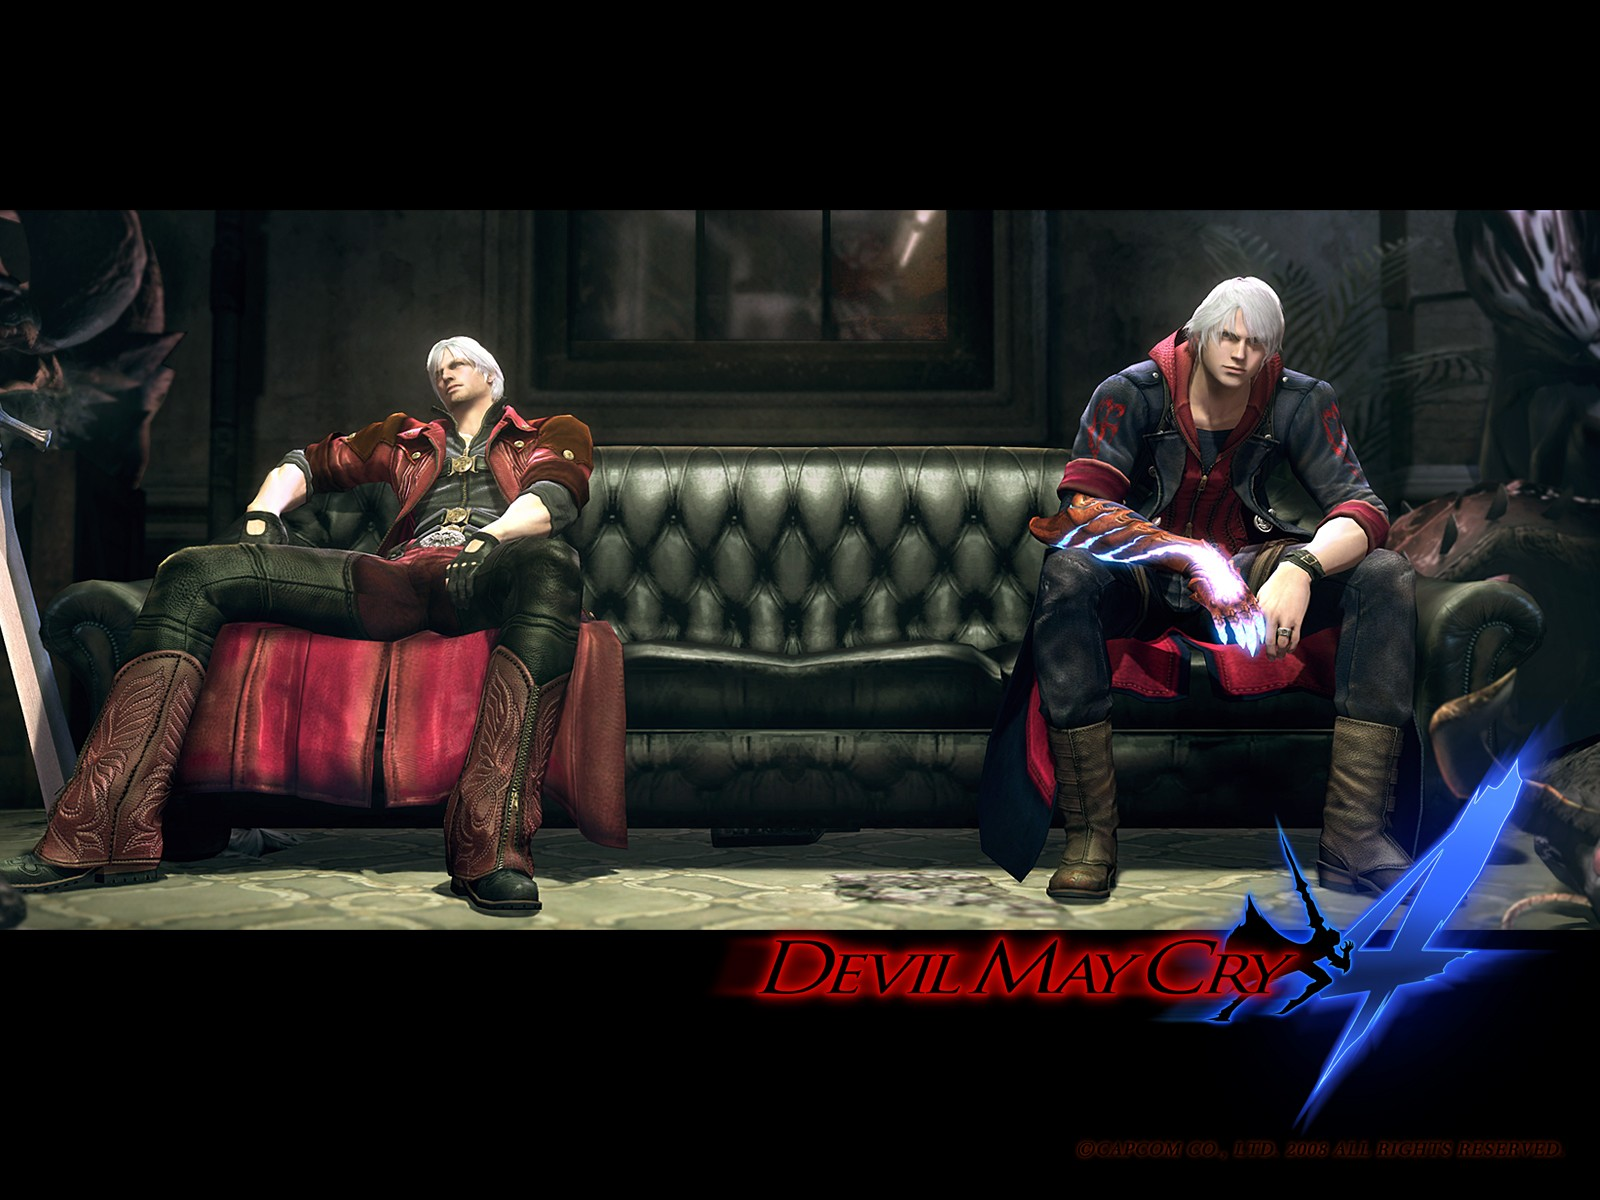 Tag Archives: Devil May Cry 4